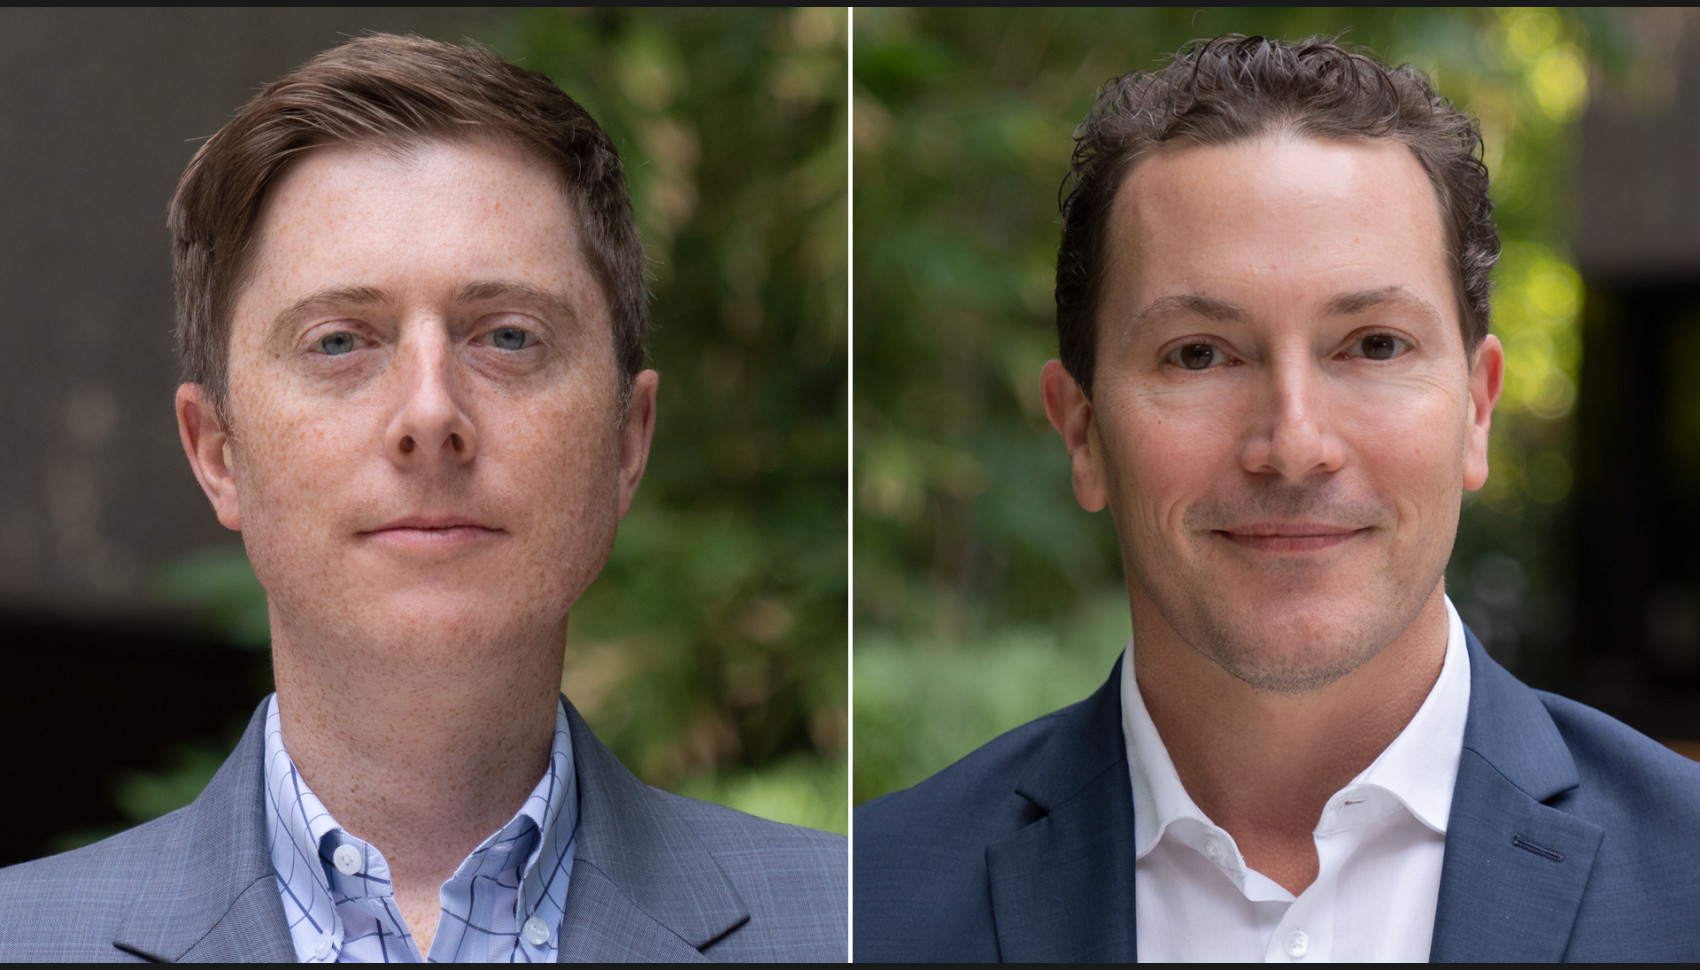 Moore and Seitzer headshots